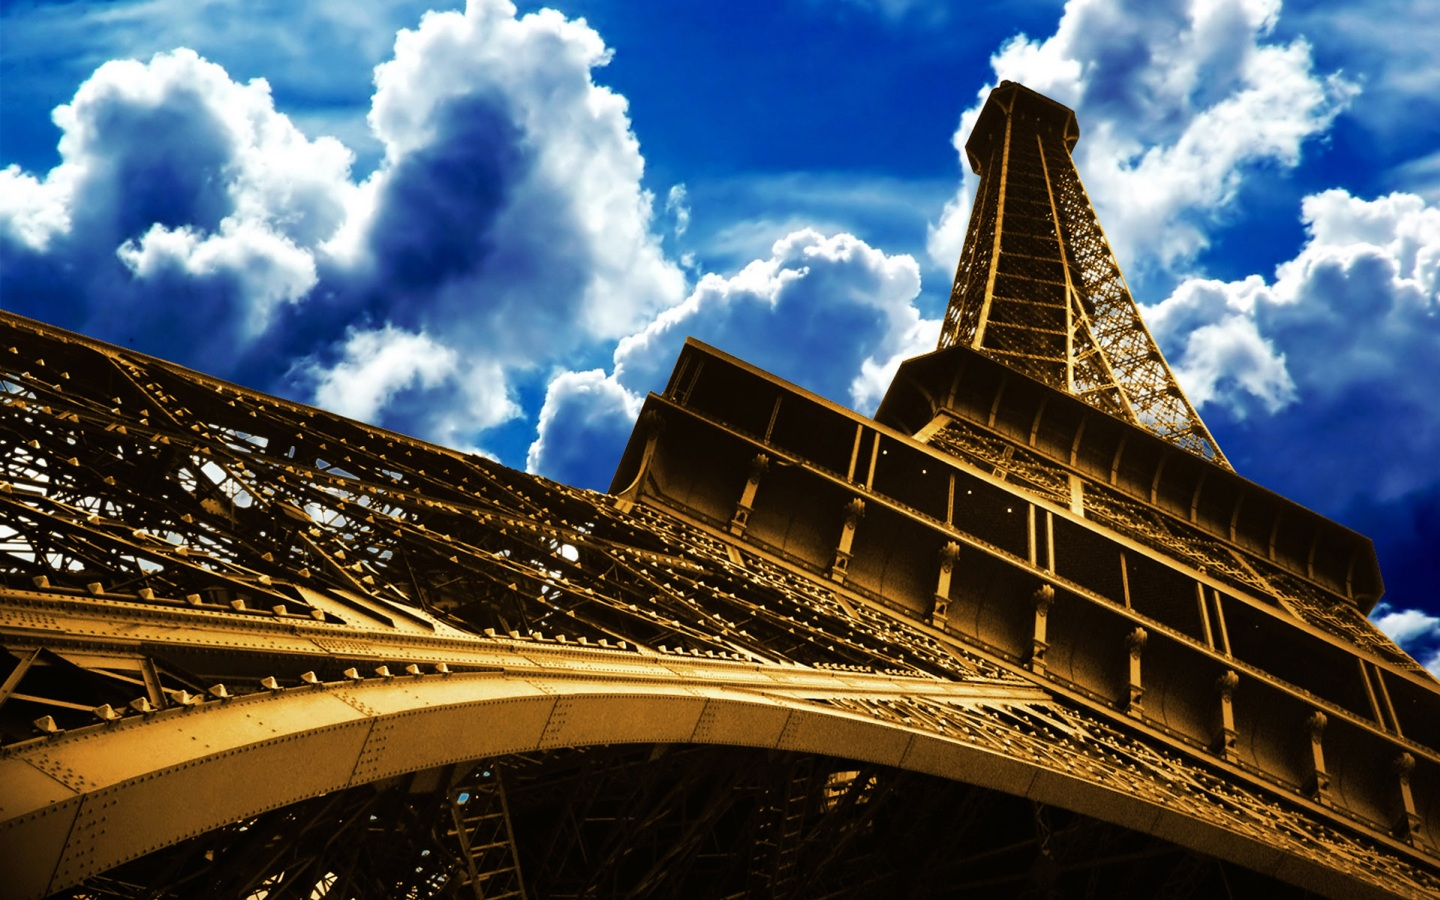 Papel de parede torre eiffel paris wallpaper para for Torre enfel